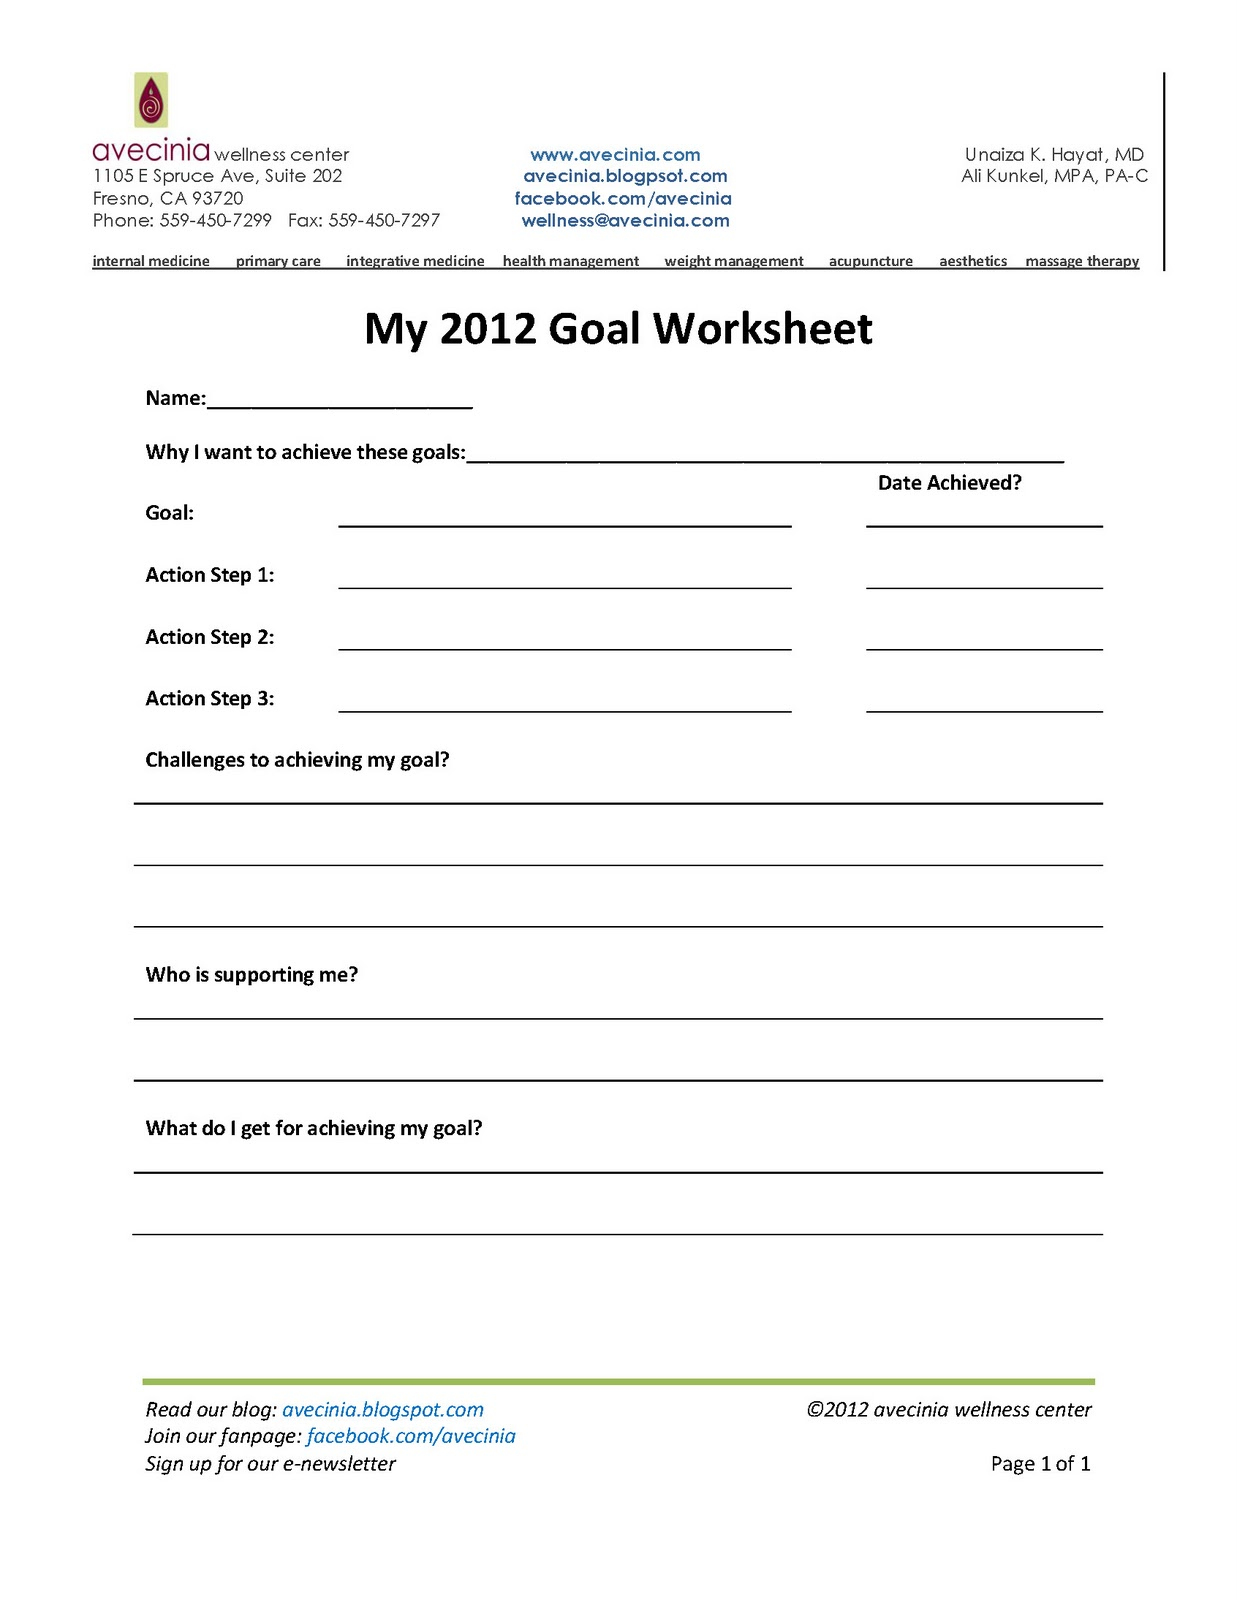 avecinia wellness center: Achieving your goals in 2012 ...